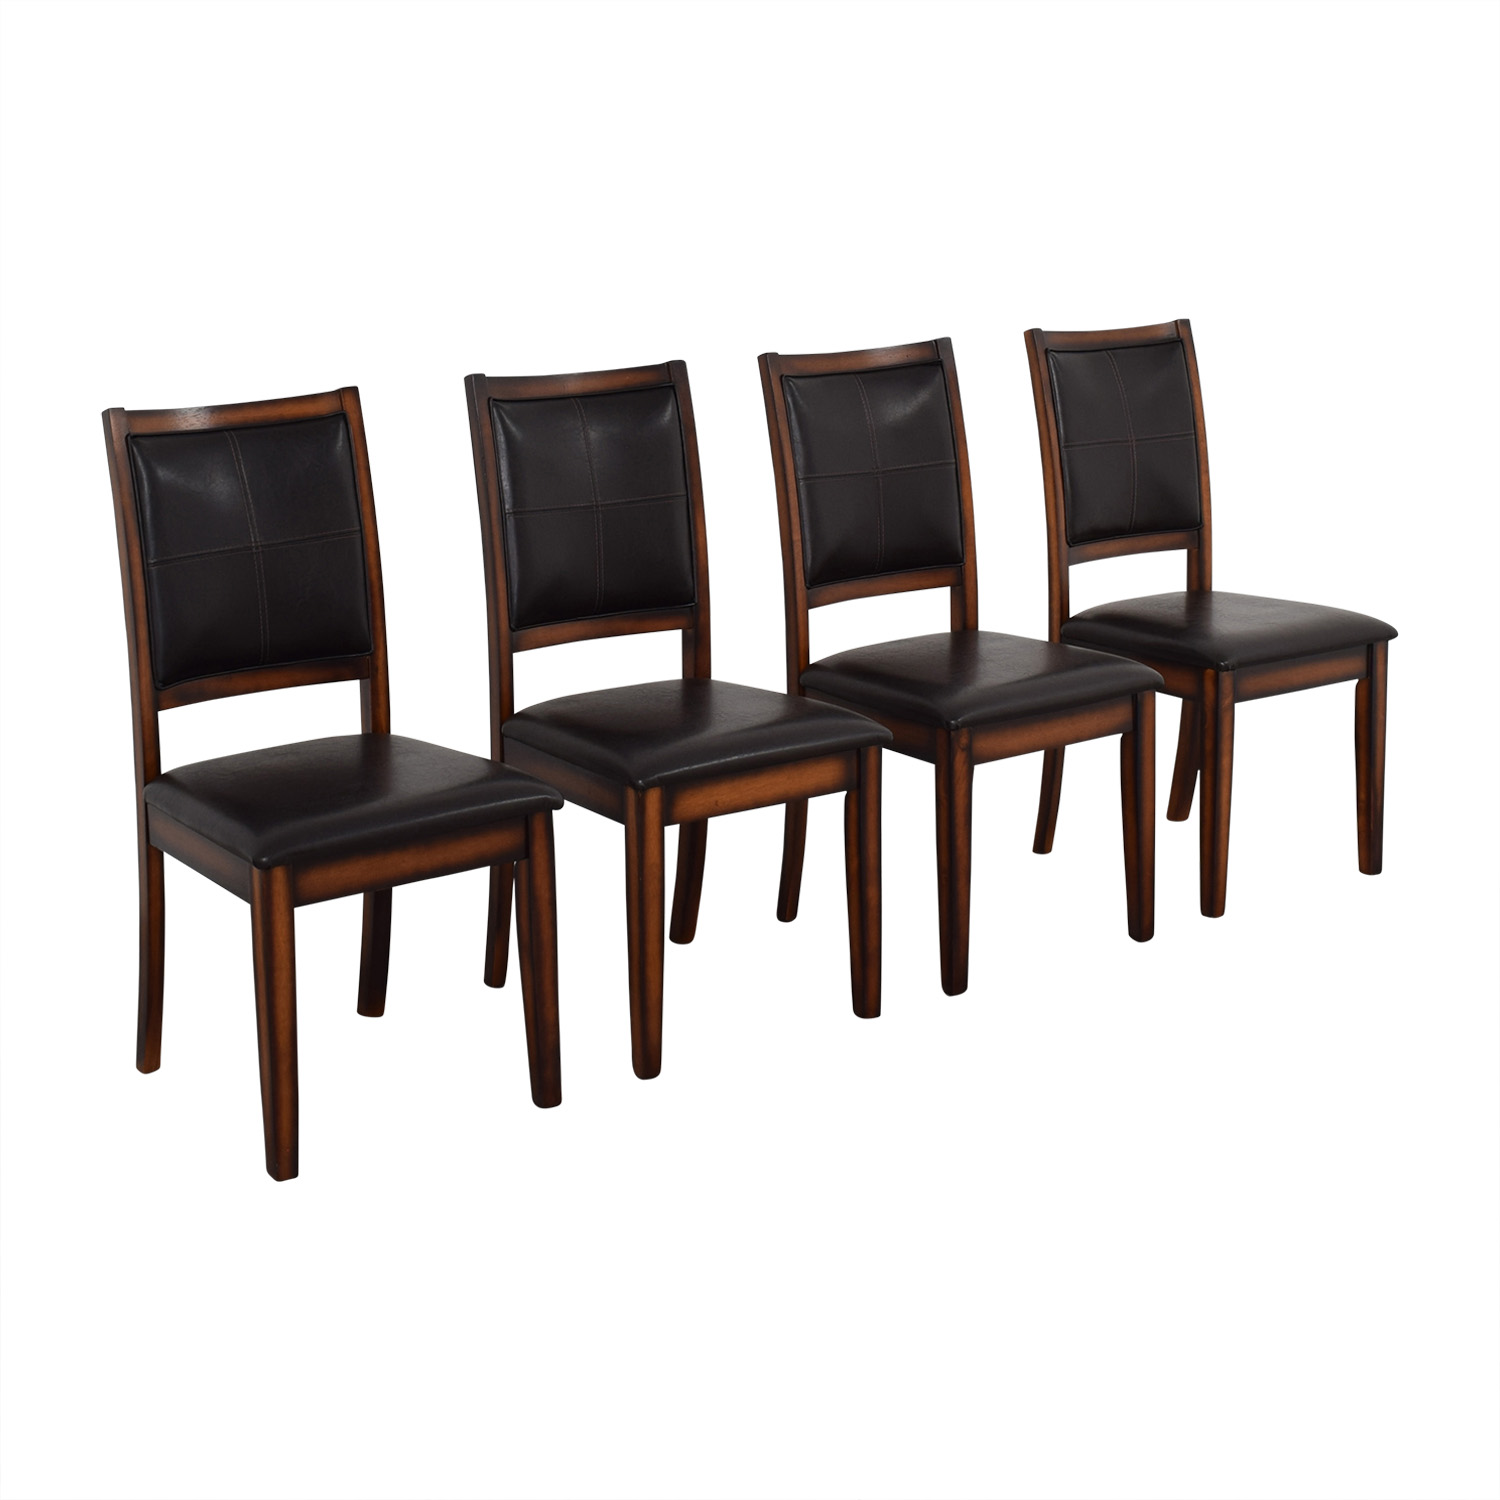 Raymour & Flanigan Raymour & Flanigan Upholstered Dining Chairs on sale